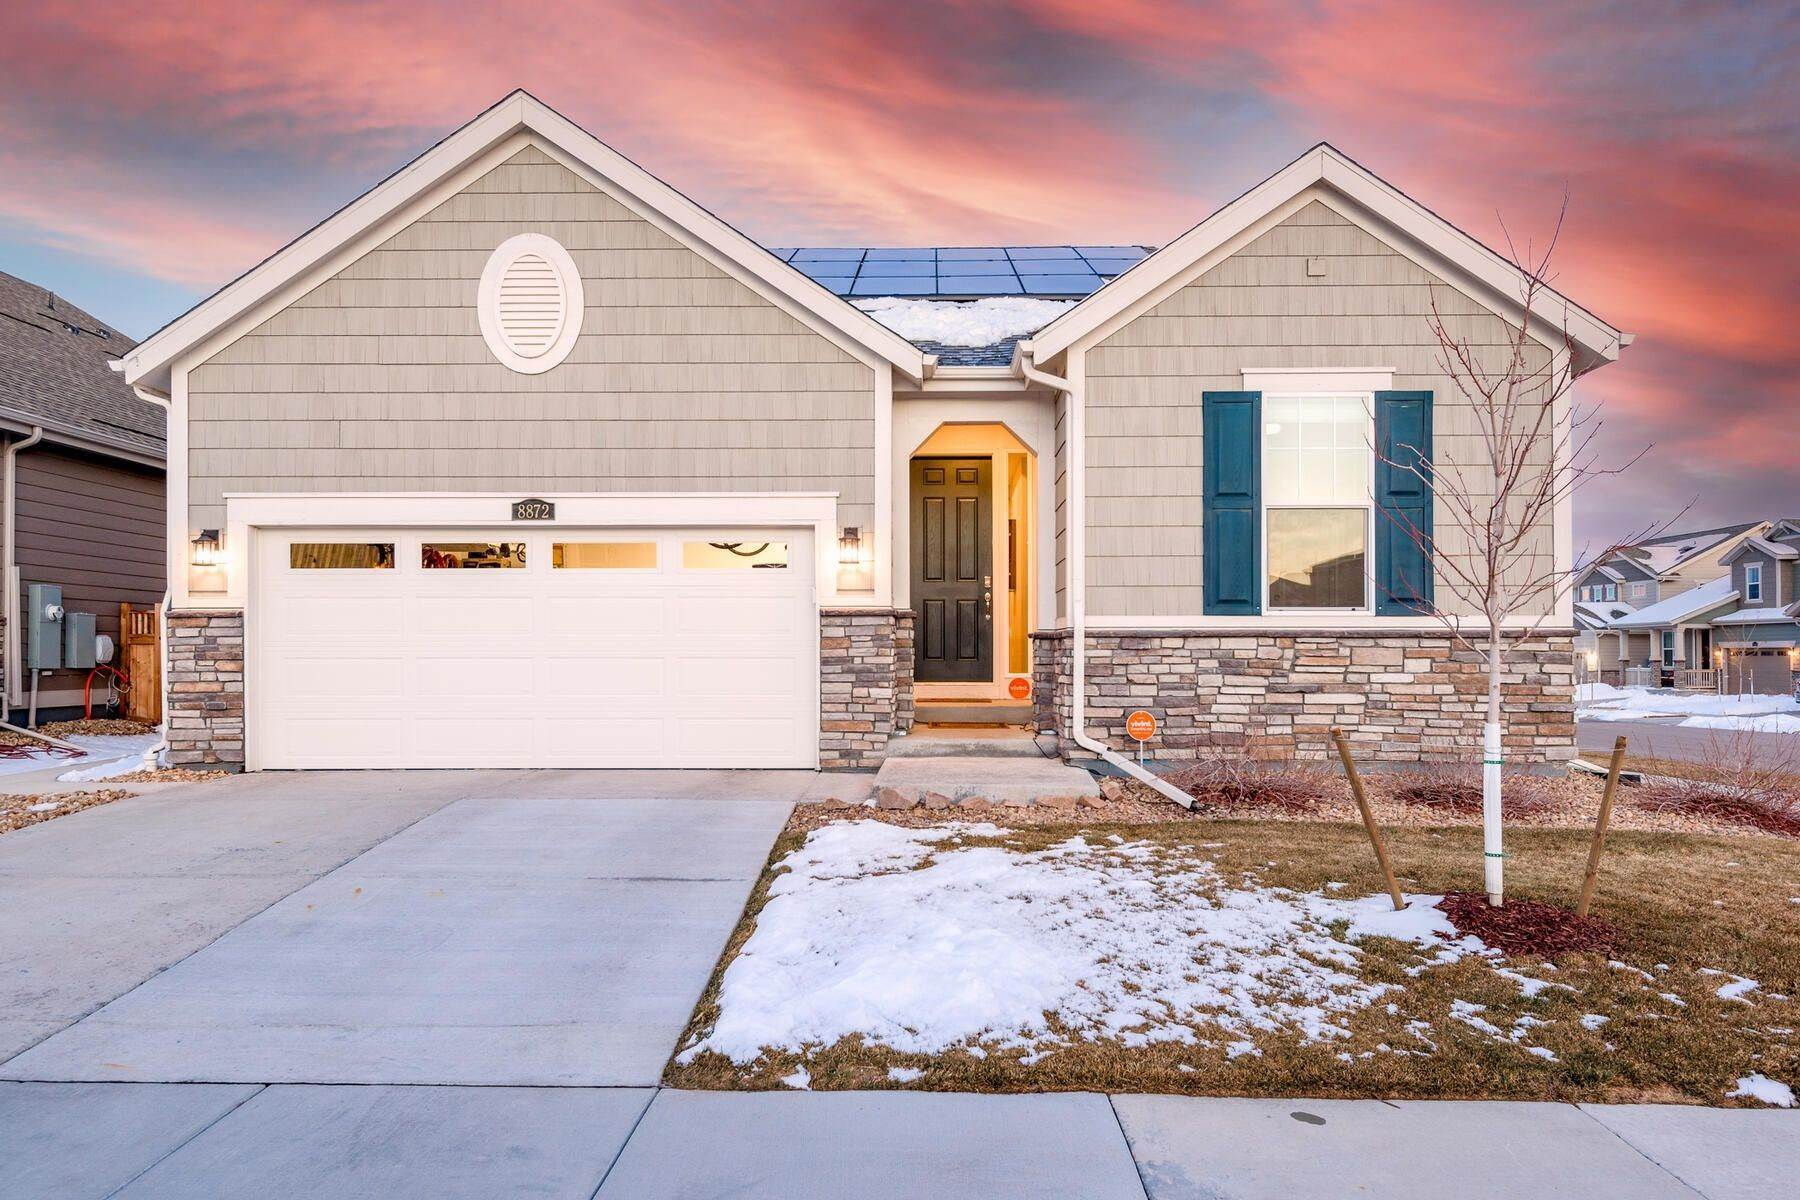 Single Family Homes for Sale at Spacious Ranch-esque Home with Easy Access to the Best of Parker 8872 Larch Trail Parker, Colorado 80134 United States